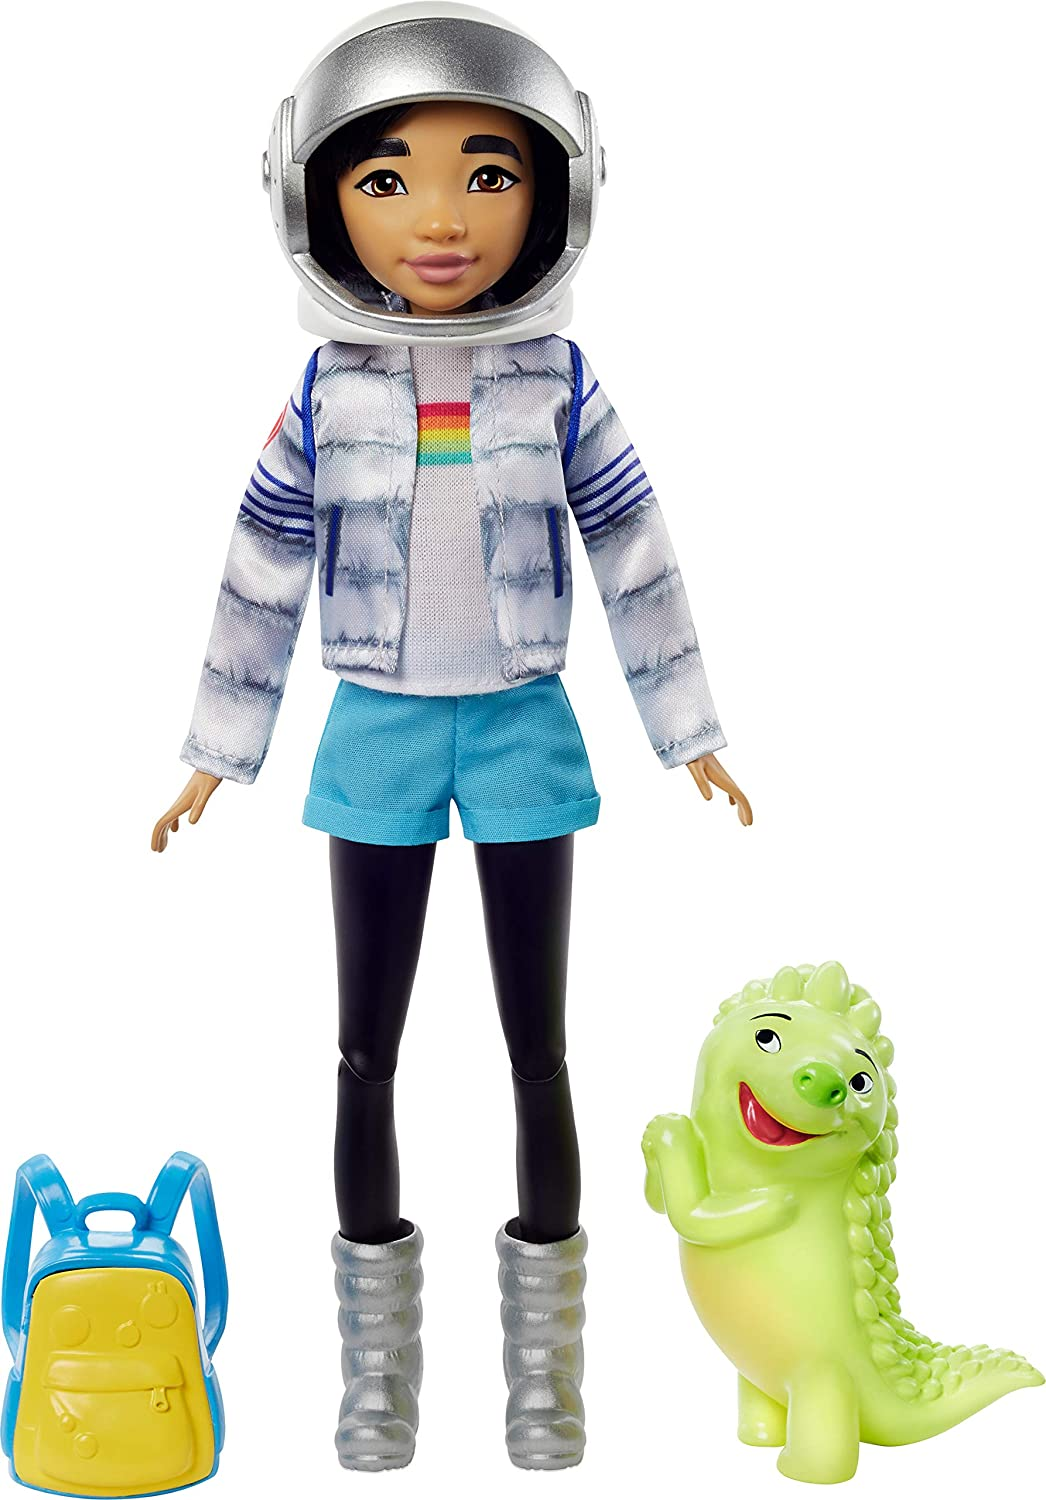 Netflix's Over The Moon, Fei Fei Doll (9-inch) in Space Explorer Outfit, Includes Glow-in-Dark Gobi Figure (3-inch), Removable Outfit with Cool Pieces Like Moon Boots, Jacket and Astronaut Helmet